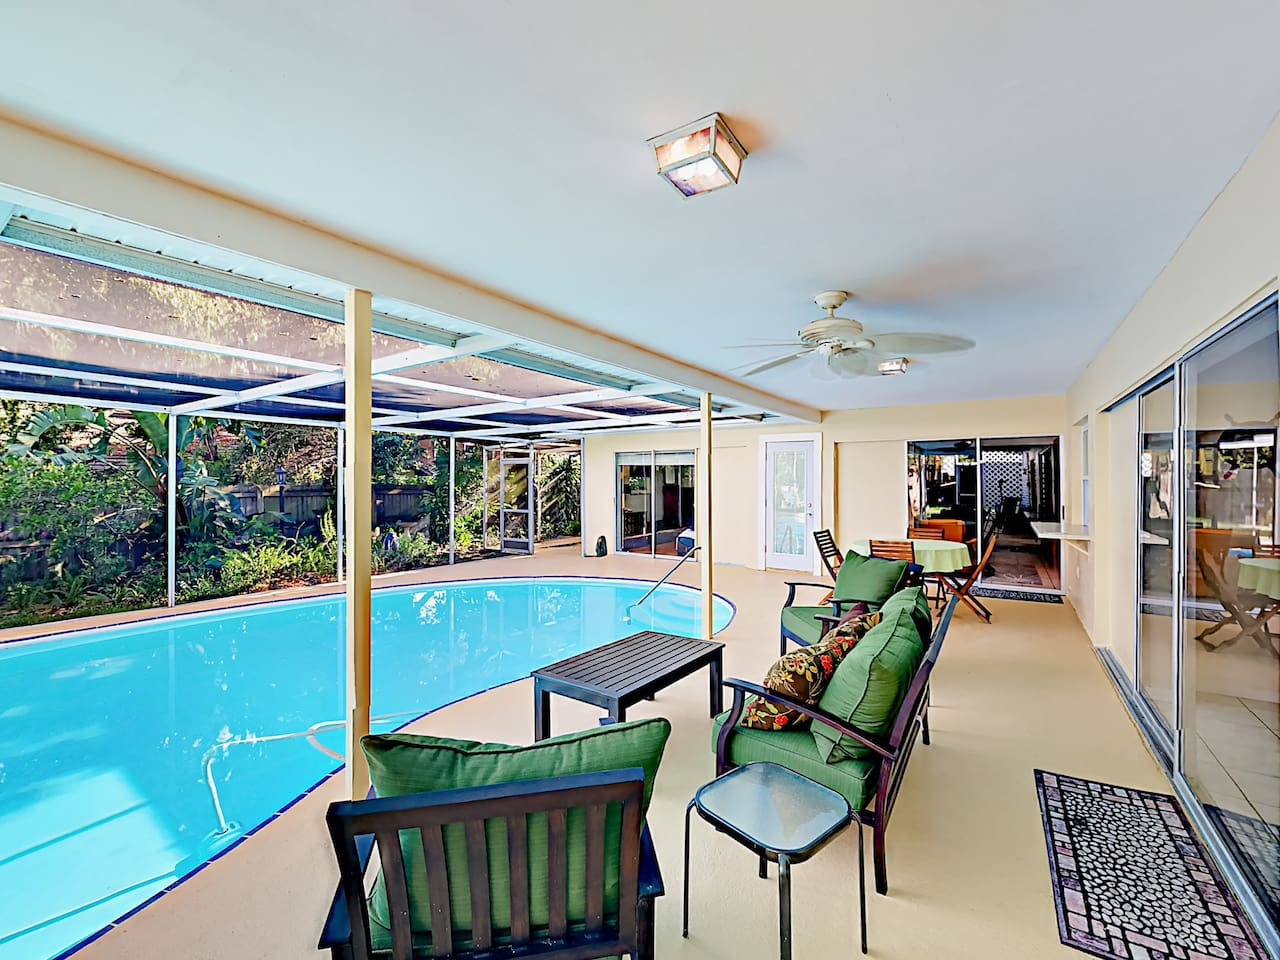 Lounge poolside and enjoy the BBQ grill.